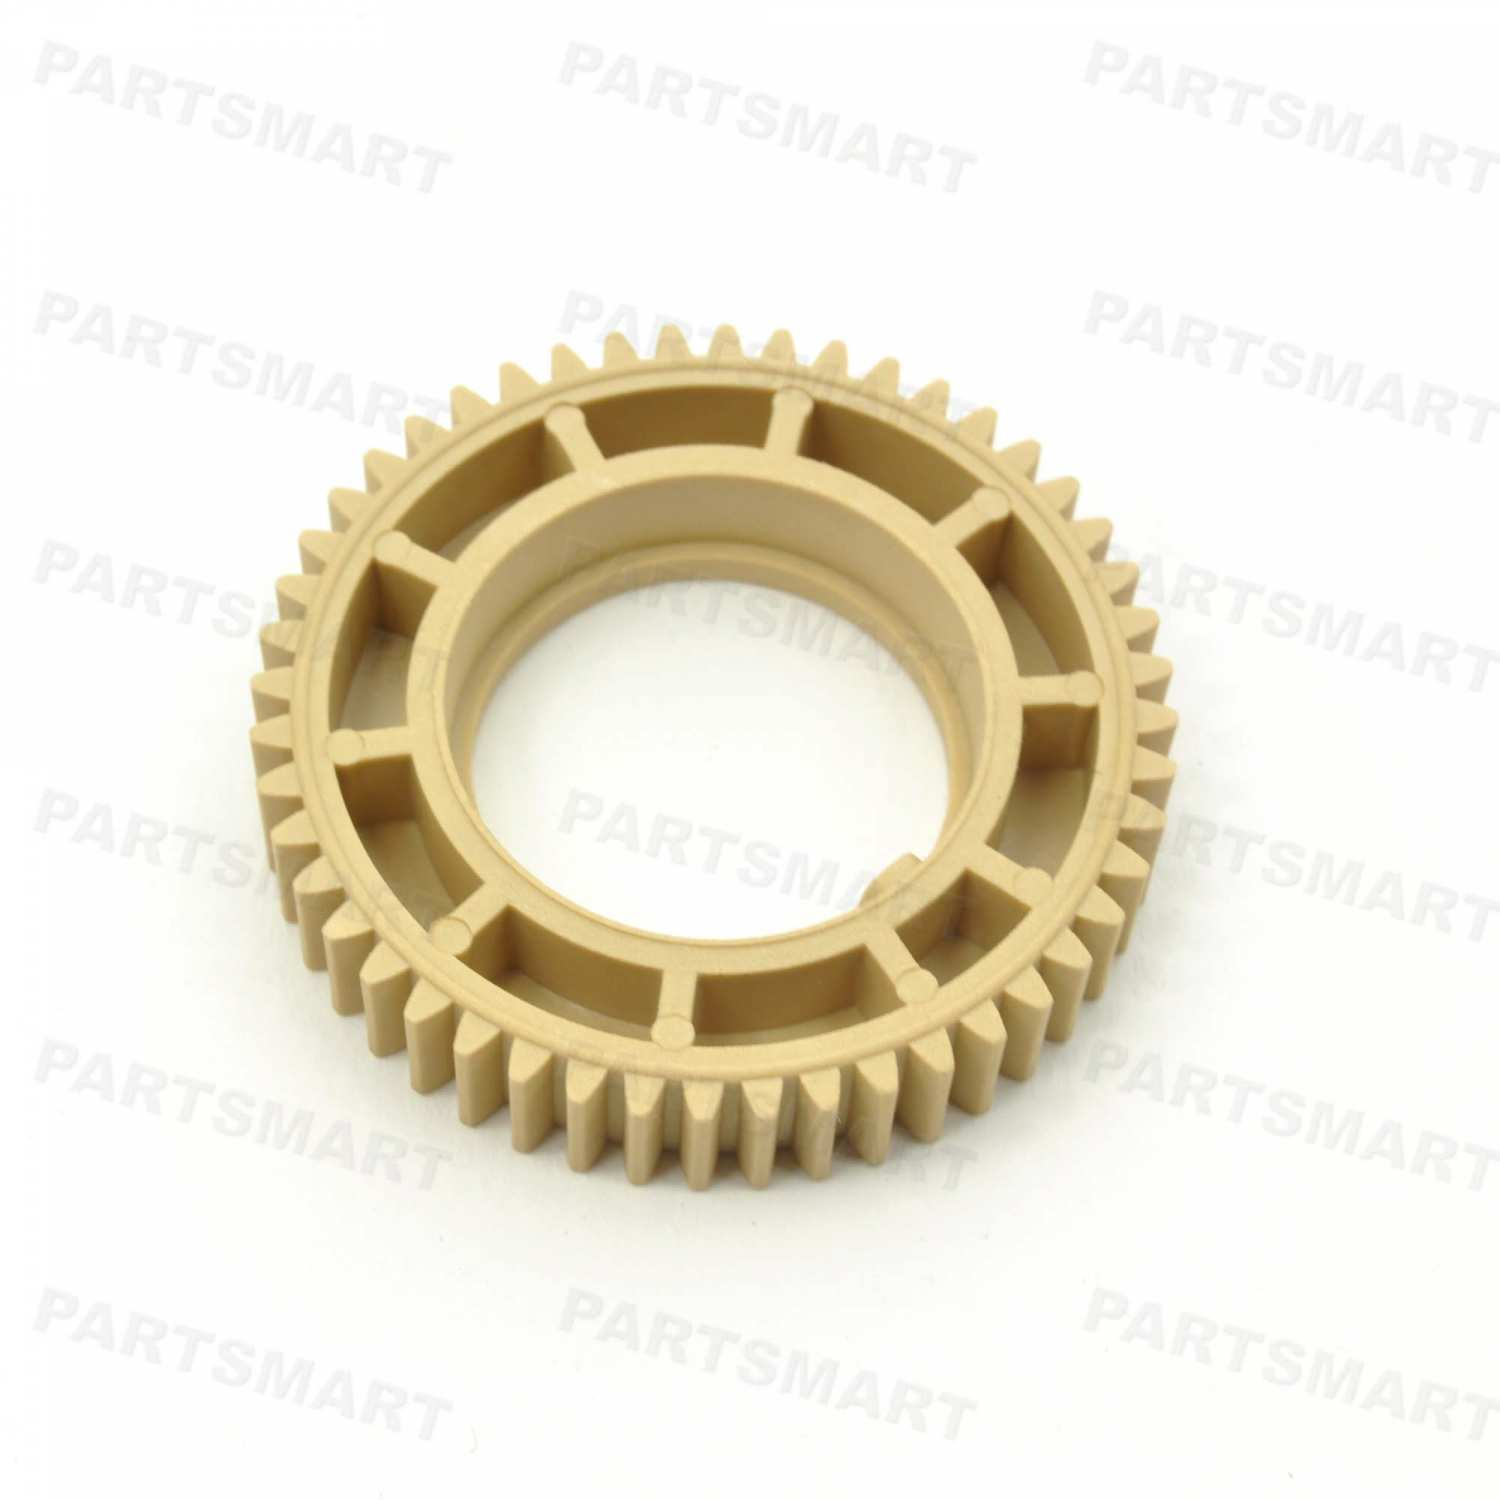 GR-X4500-48T Fuser Gear (48T) for Xerox Phaser 4500, Phaser 4510